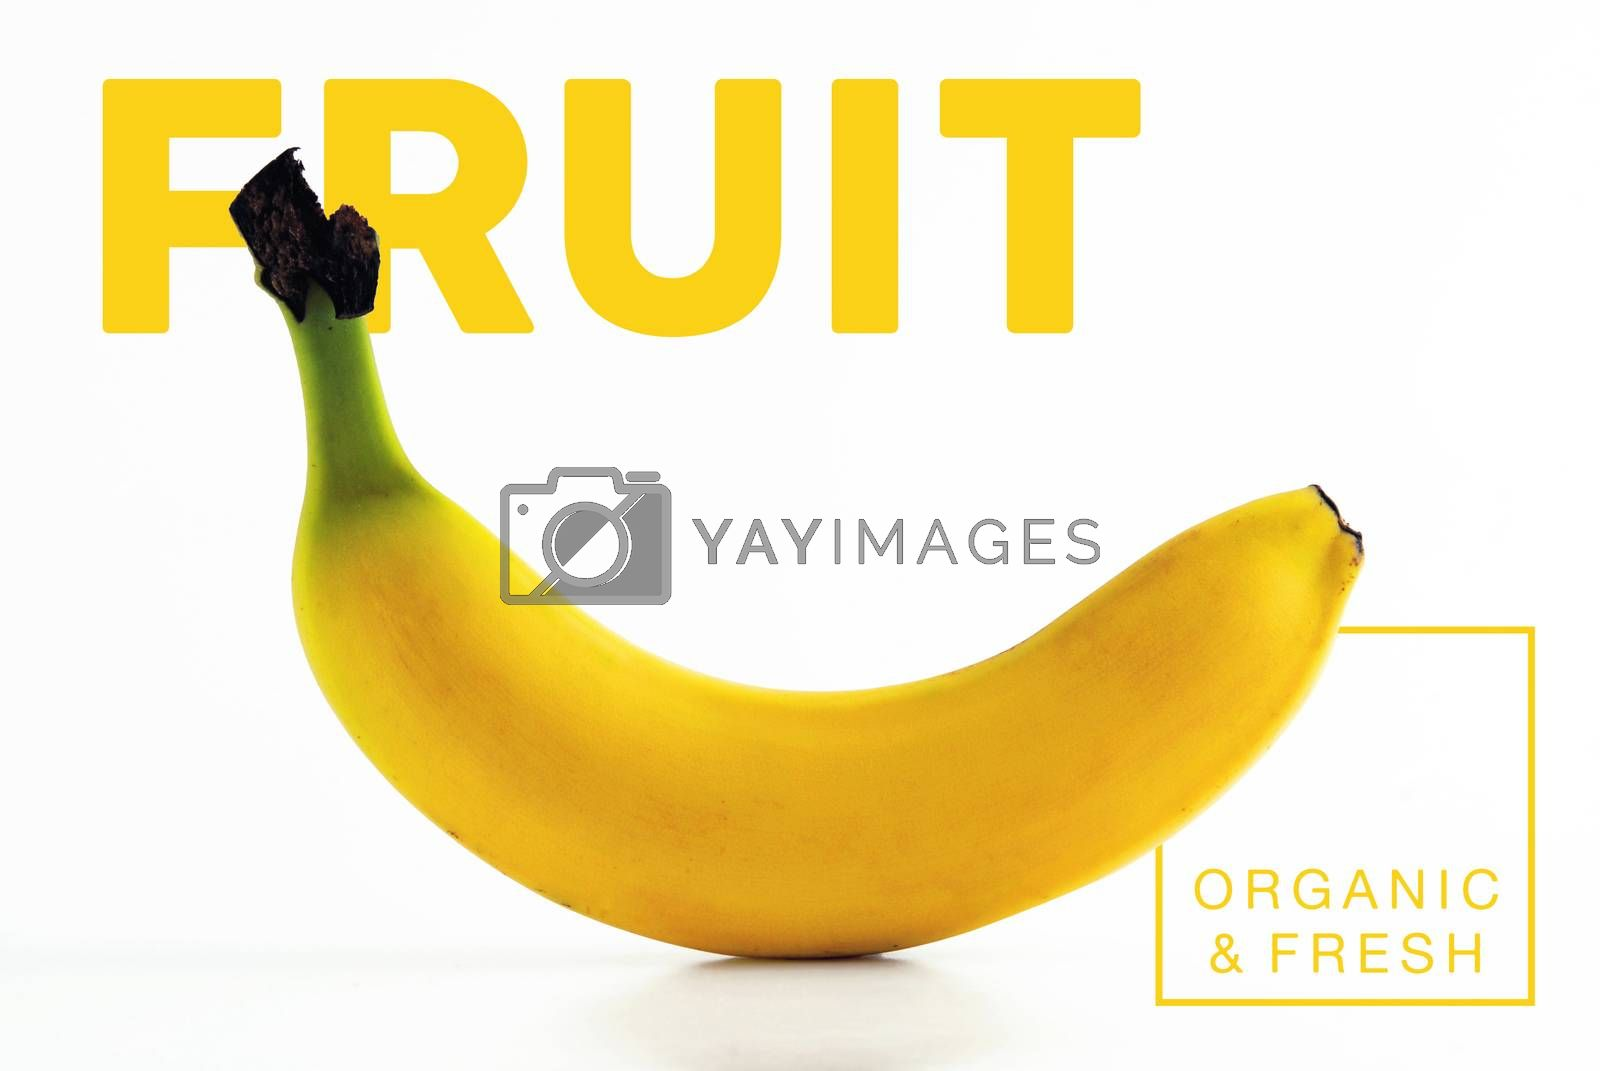 Fresh and organic banana fruit isolated background ideal for healthy food concept poster or cover design.